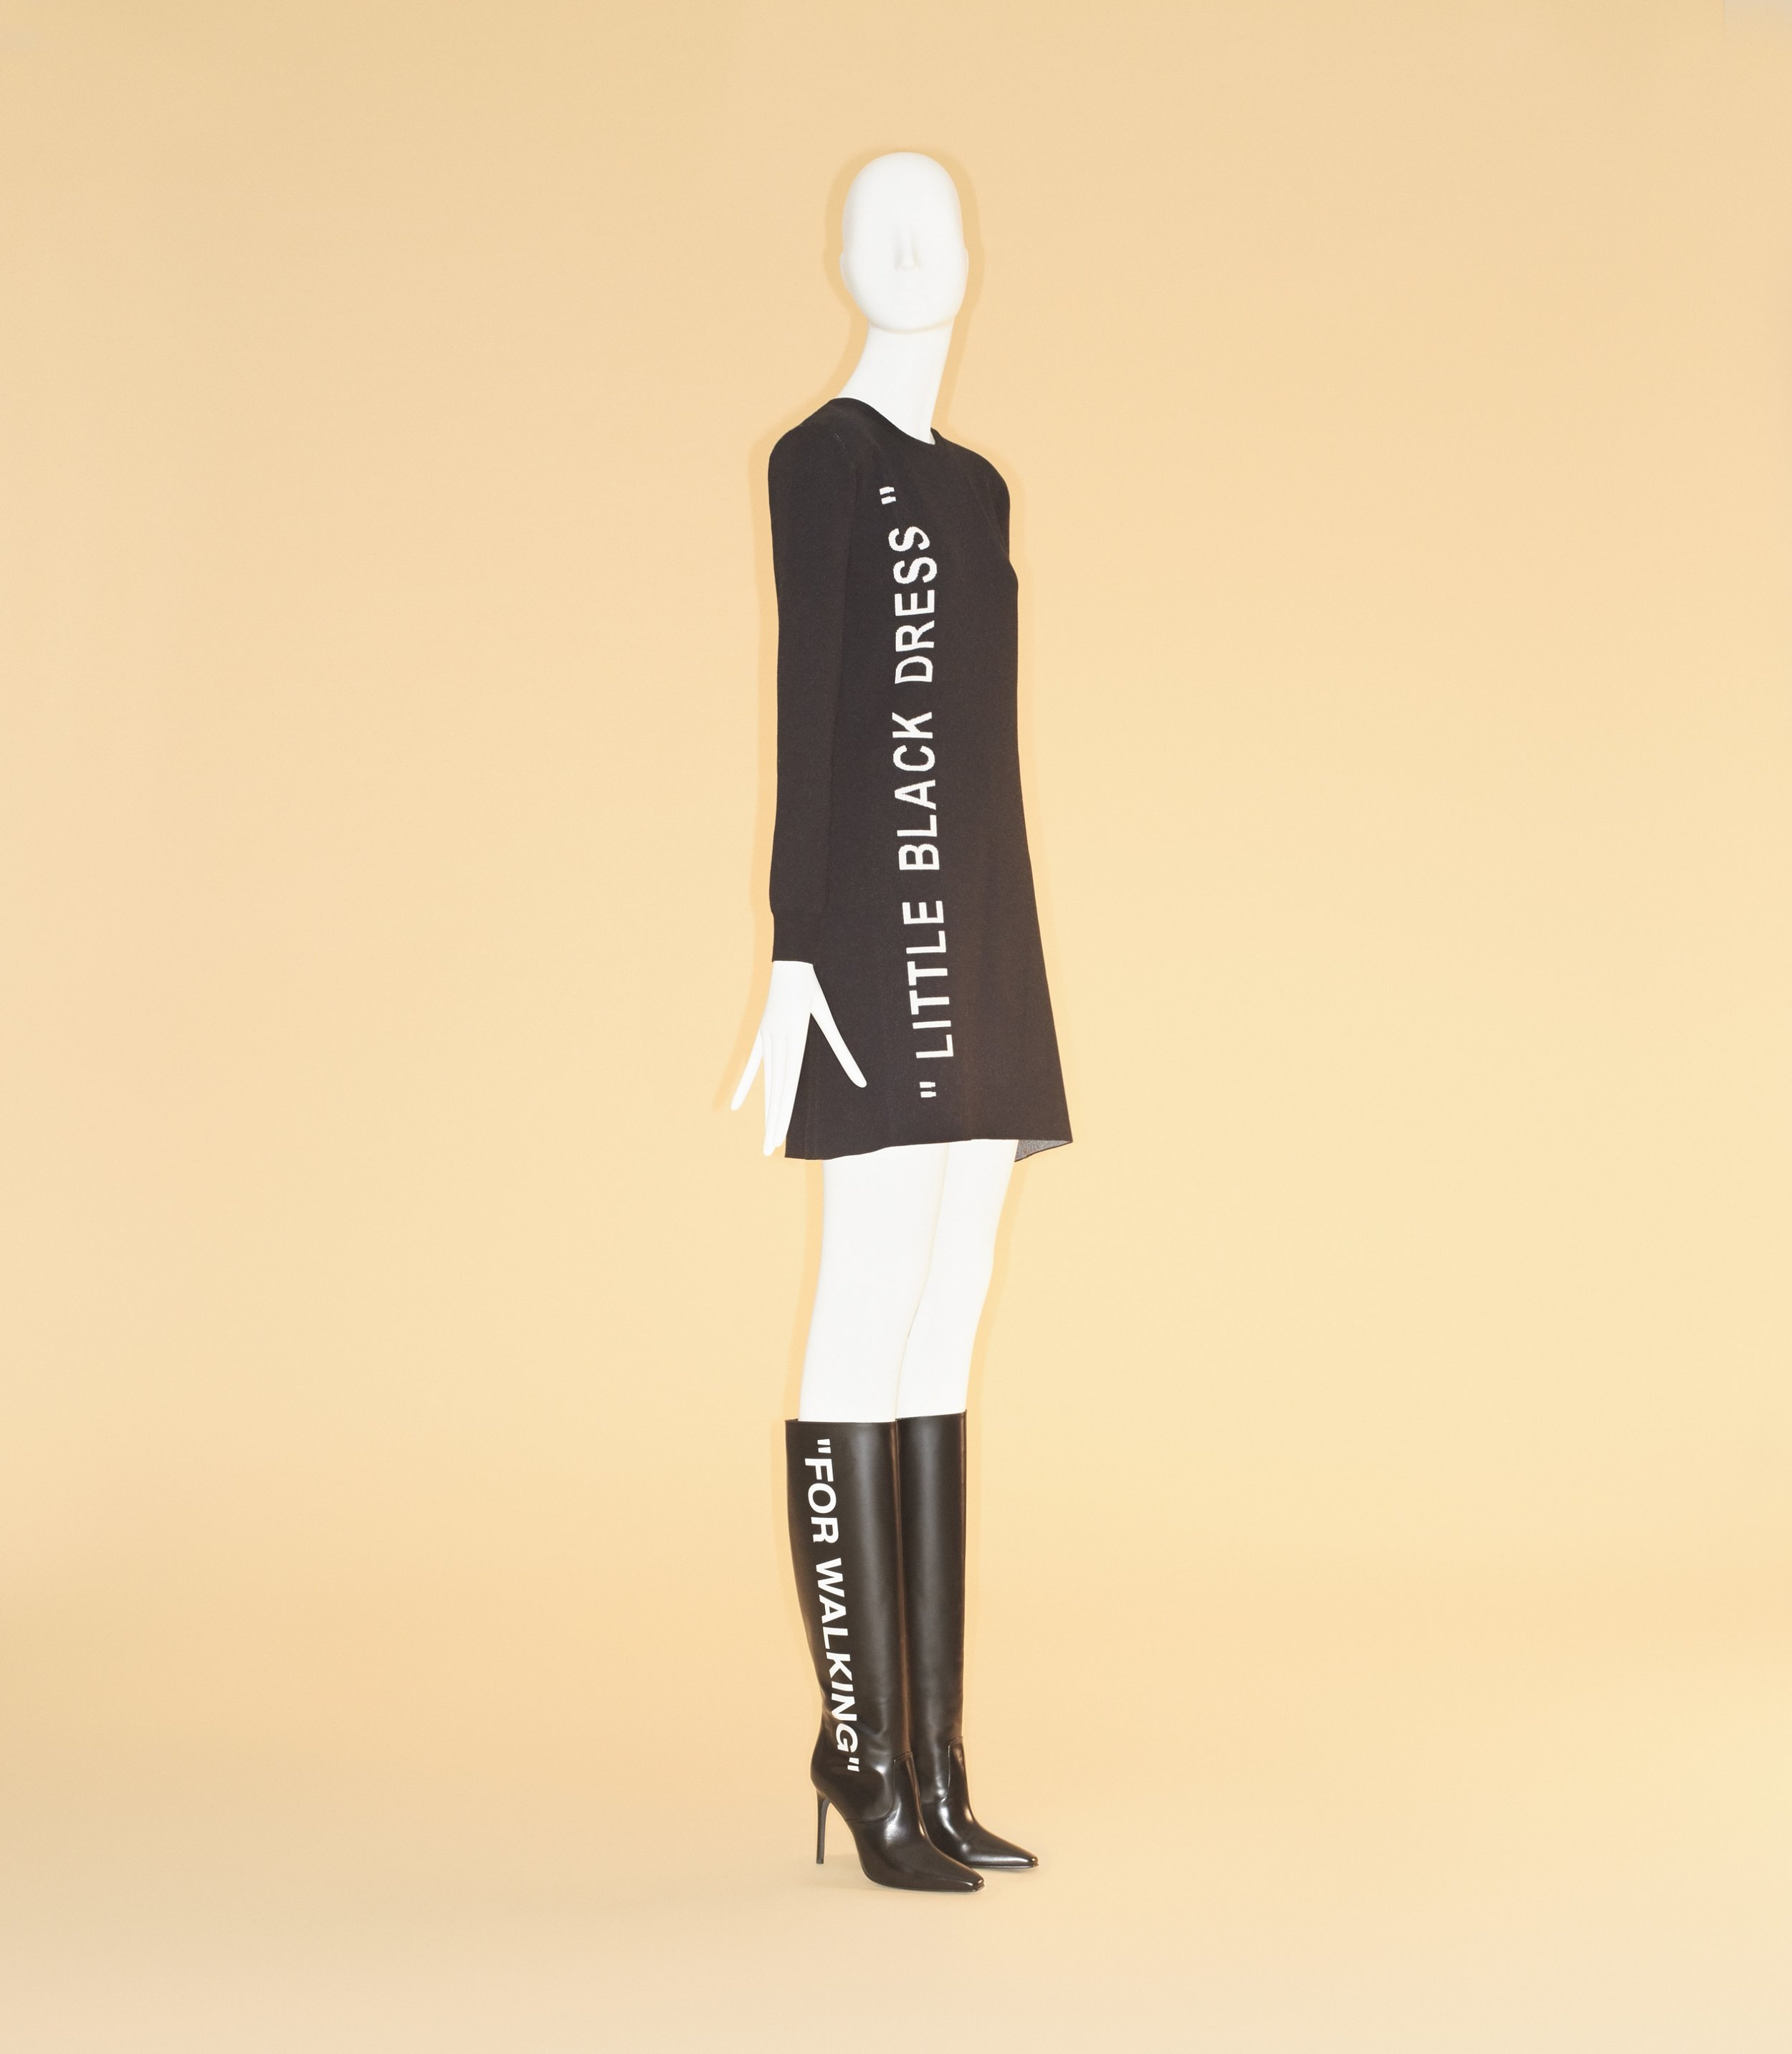 Ensemble, Virgil Abloh (American, born 1980) for Off-White c/o Virgil Abloh (Italian, founded 2013), pre-fall 2018; The Metropolitan Museum of Art, Gift of Virgil Abloh c/o Off- WhiteTM, 2018 (2018.585a–e). Image courtesy of The Metropolitan Museum of Art, Photo © Johnny Dufort, 2018